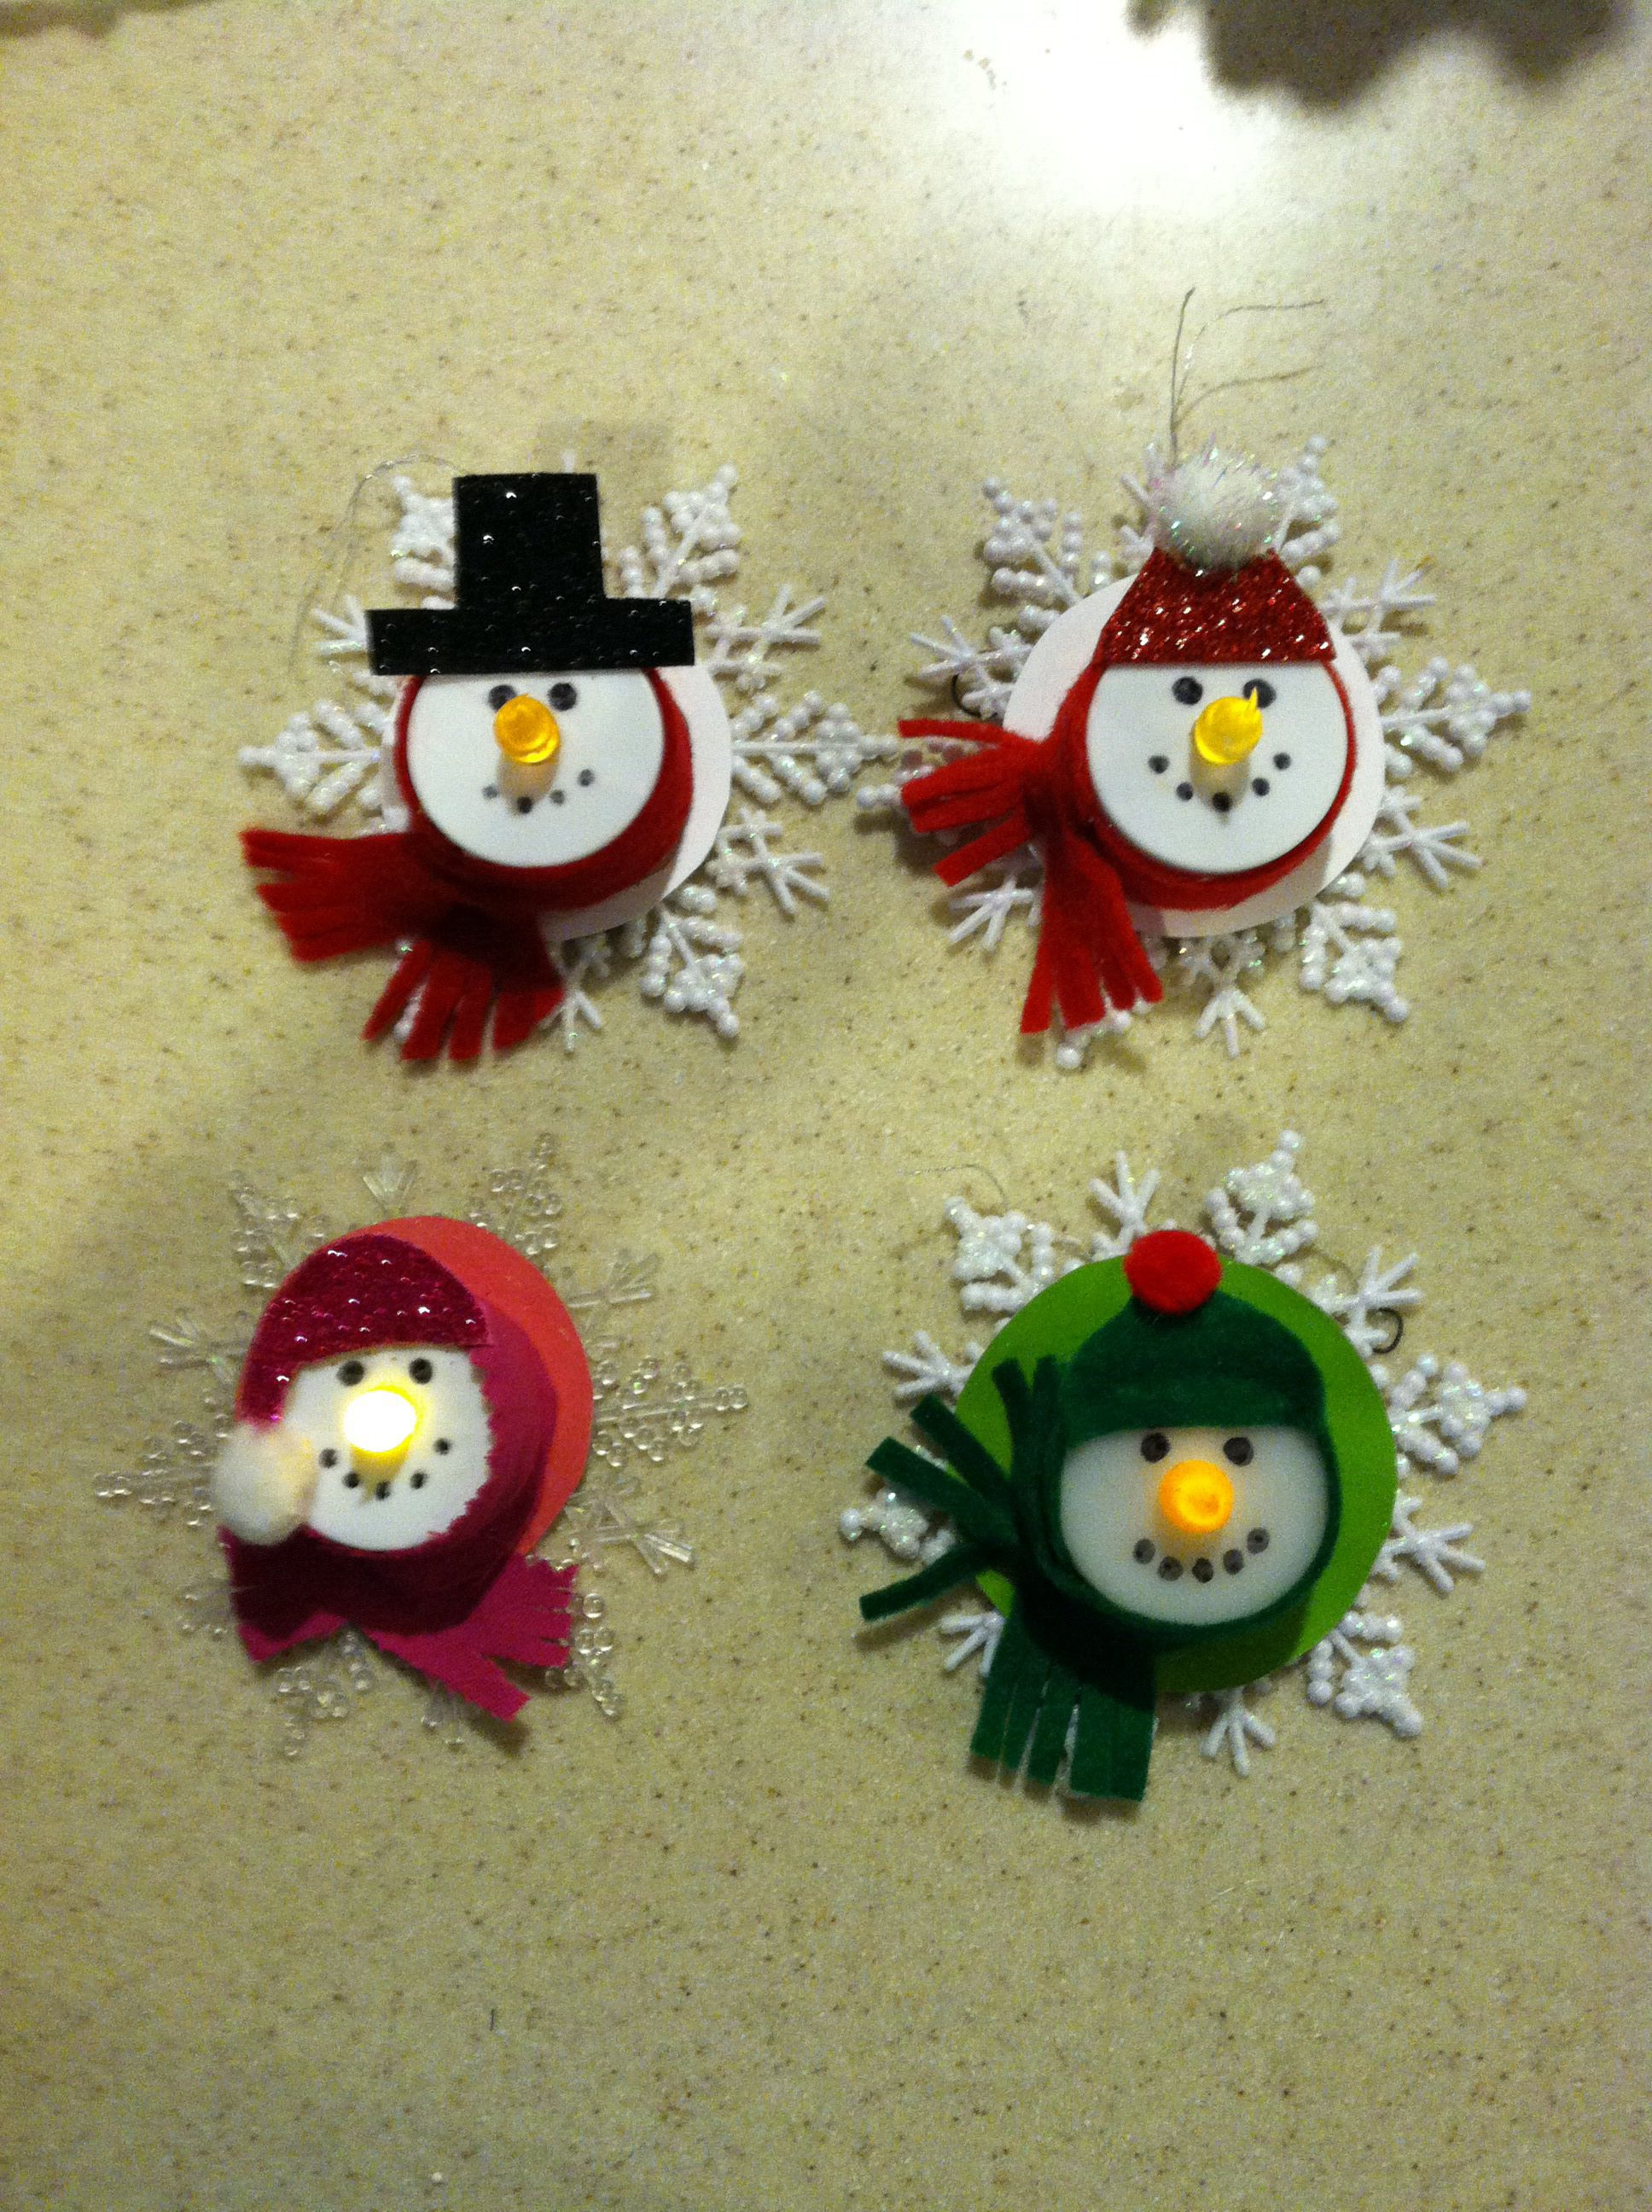 Snowman Family Made From Tea Lights Christmas Ornament Crafts Tea Light Crafts Christmas Crafts